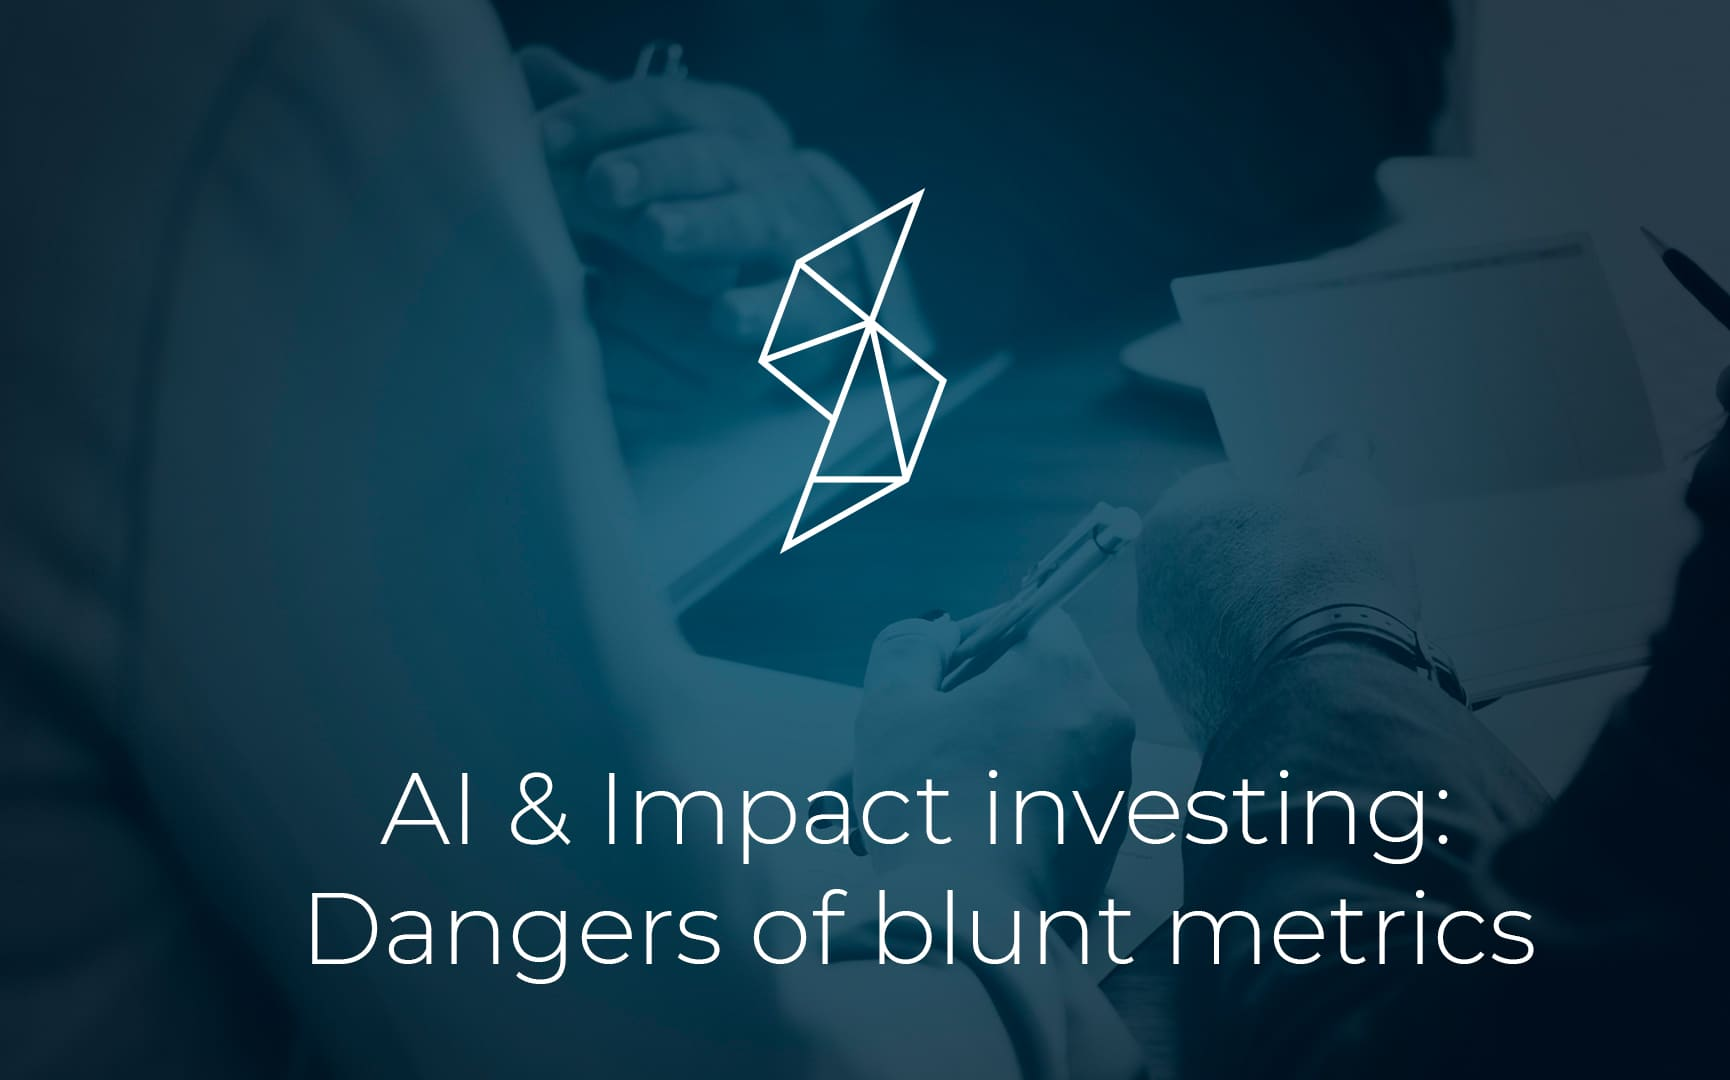 AI in Impact Investing: Goodhart's Law, Unintended Consequences, and the Dangers of Blunt Metrics